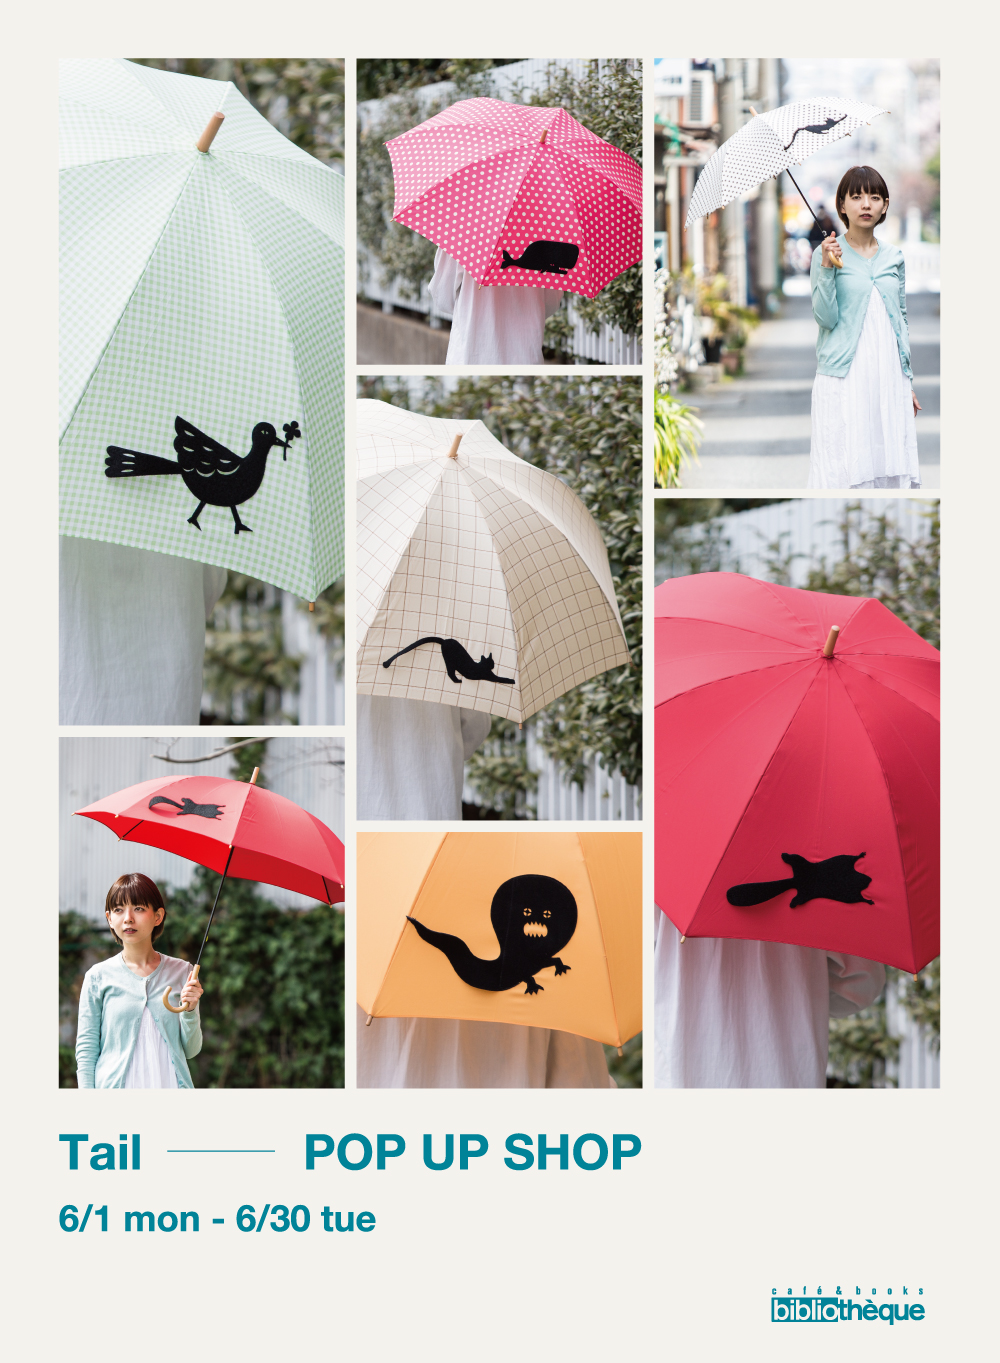 200601J_tail_pop_up_shop_A1